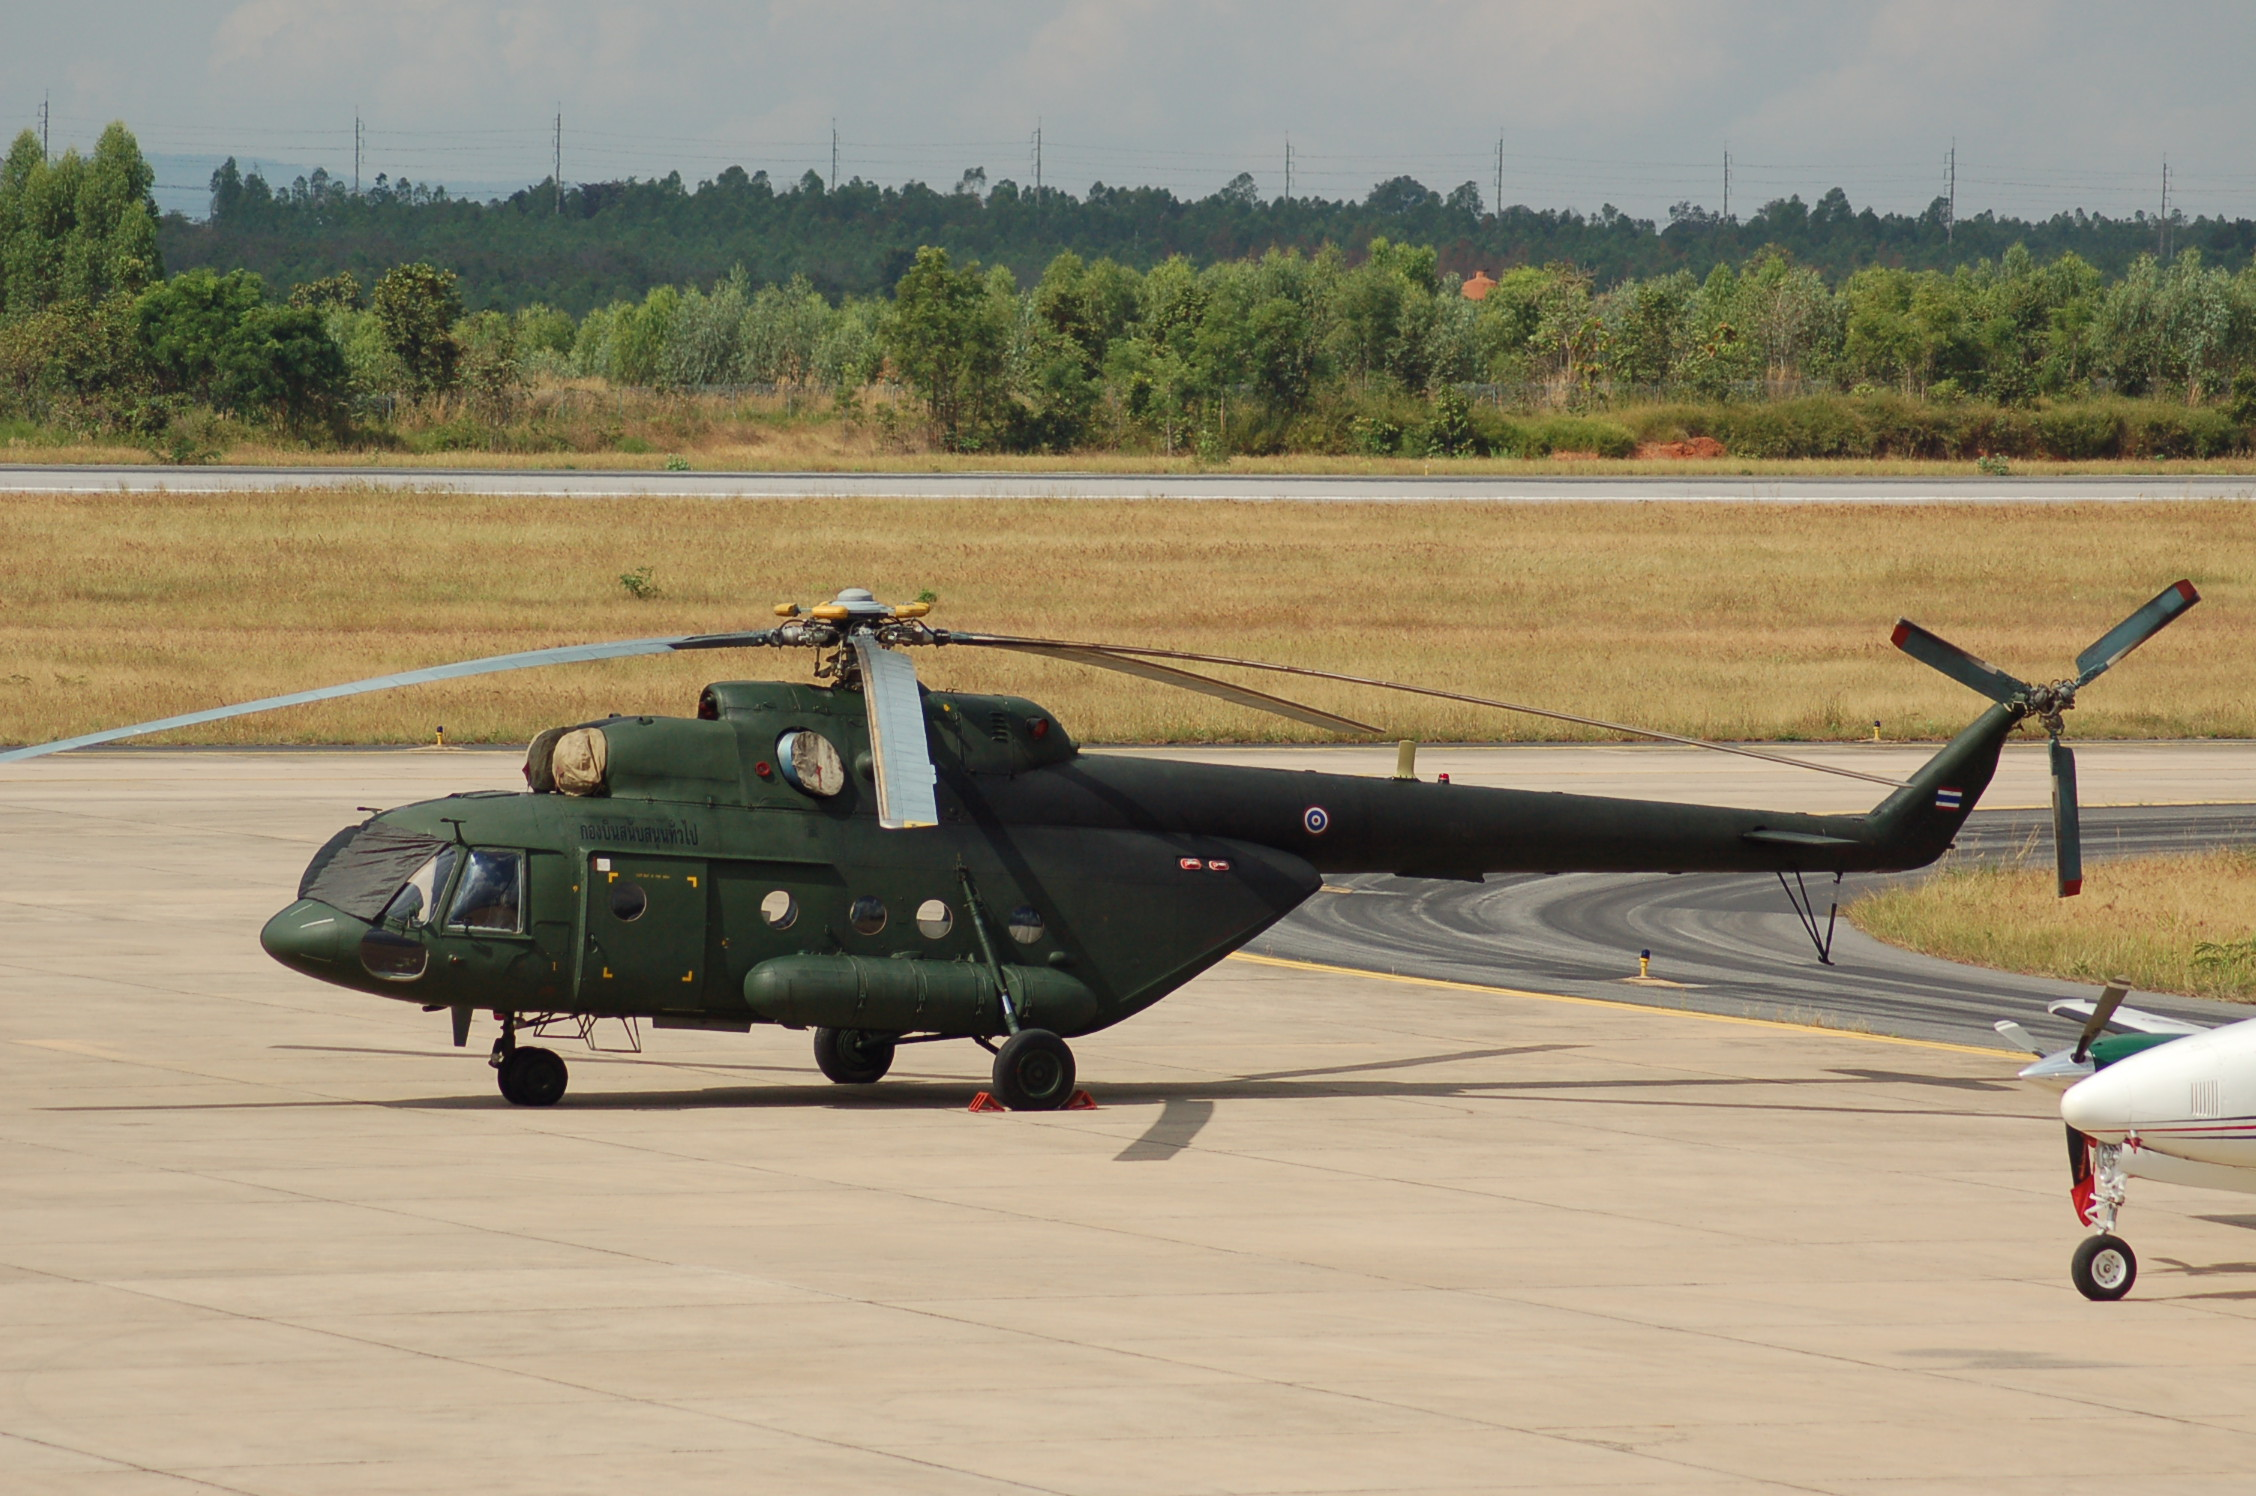 Thailand Looks to Buy 12 Mi-17V5 Helicopters to Replace the